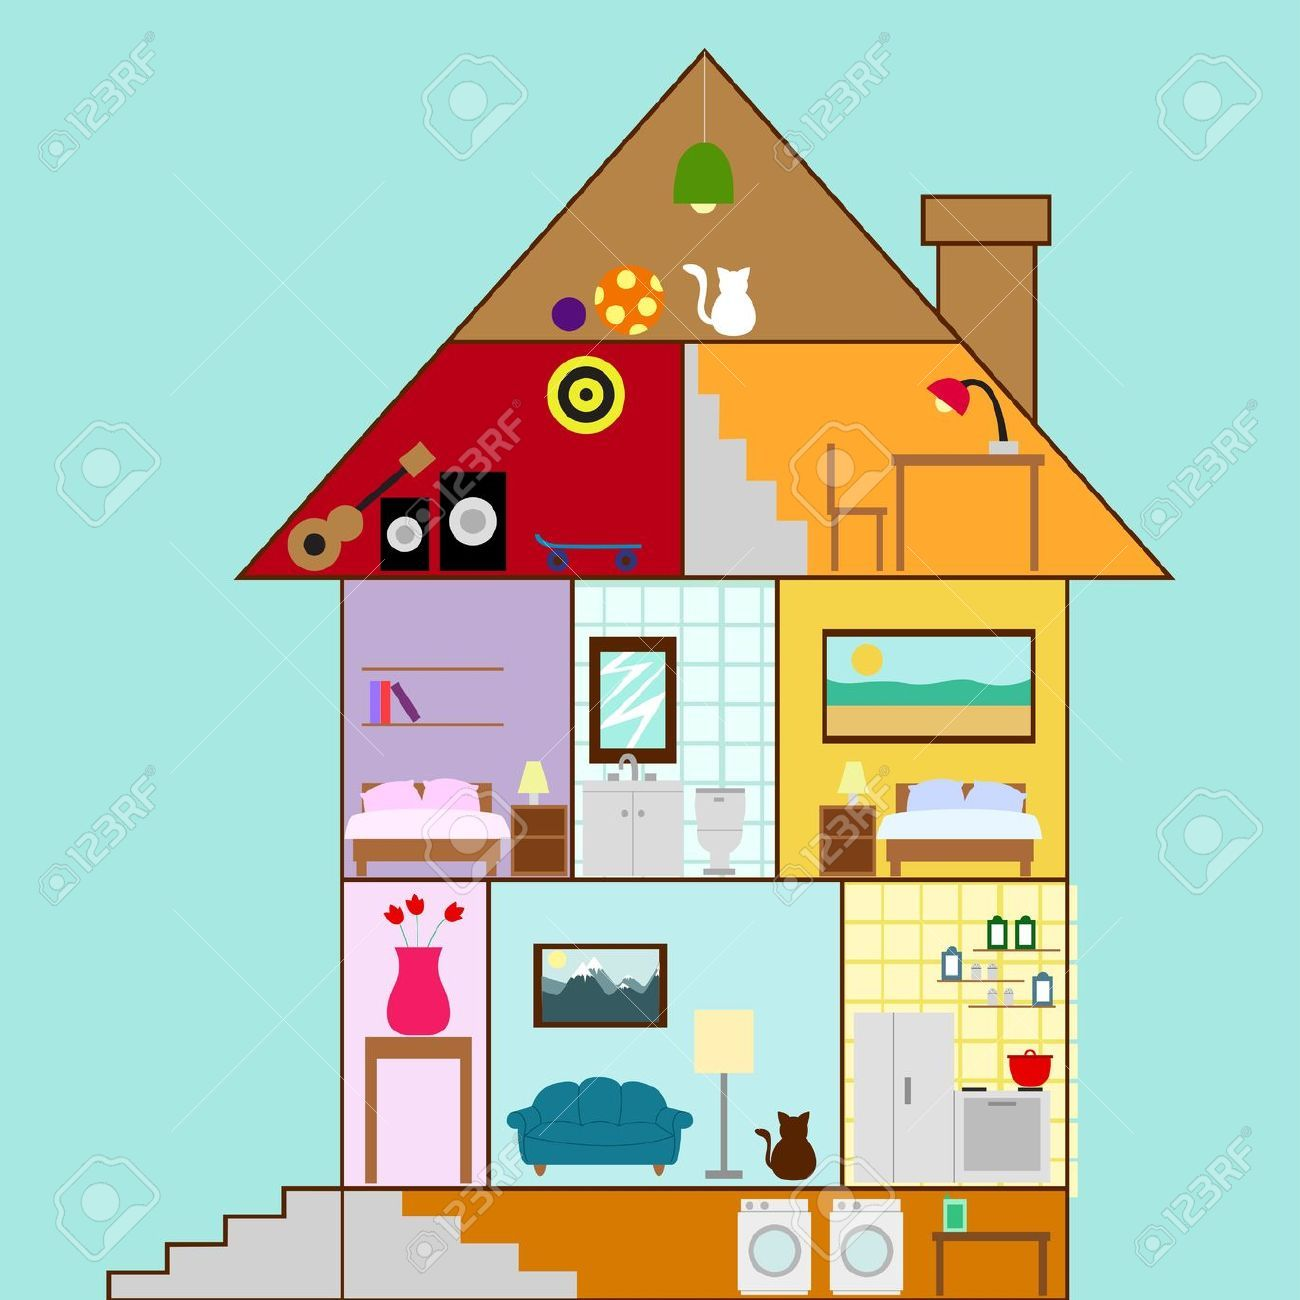 House cross section clipart basement house interior in a